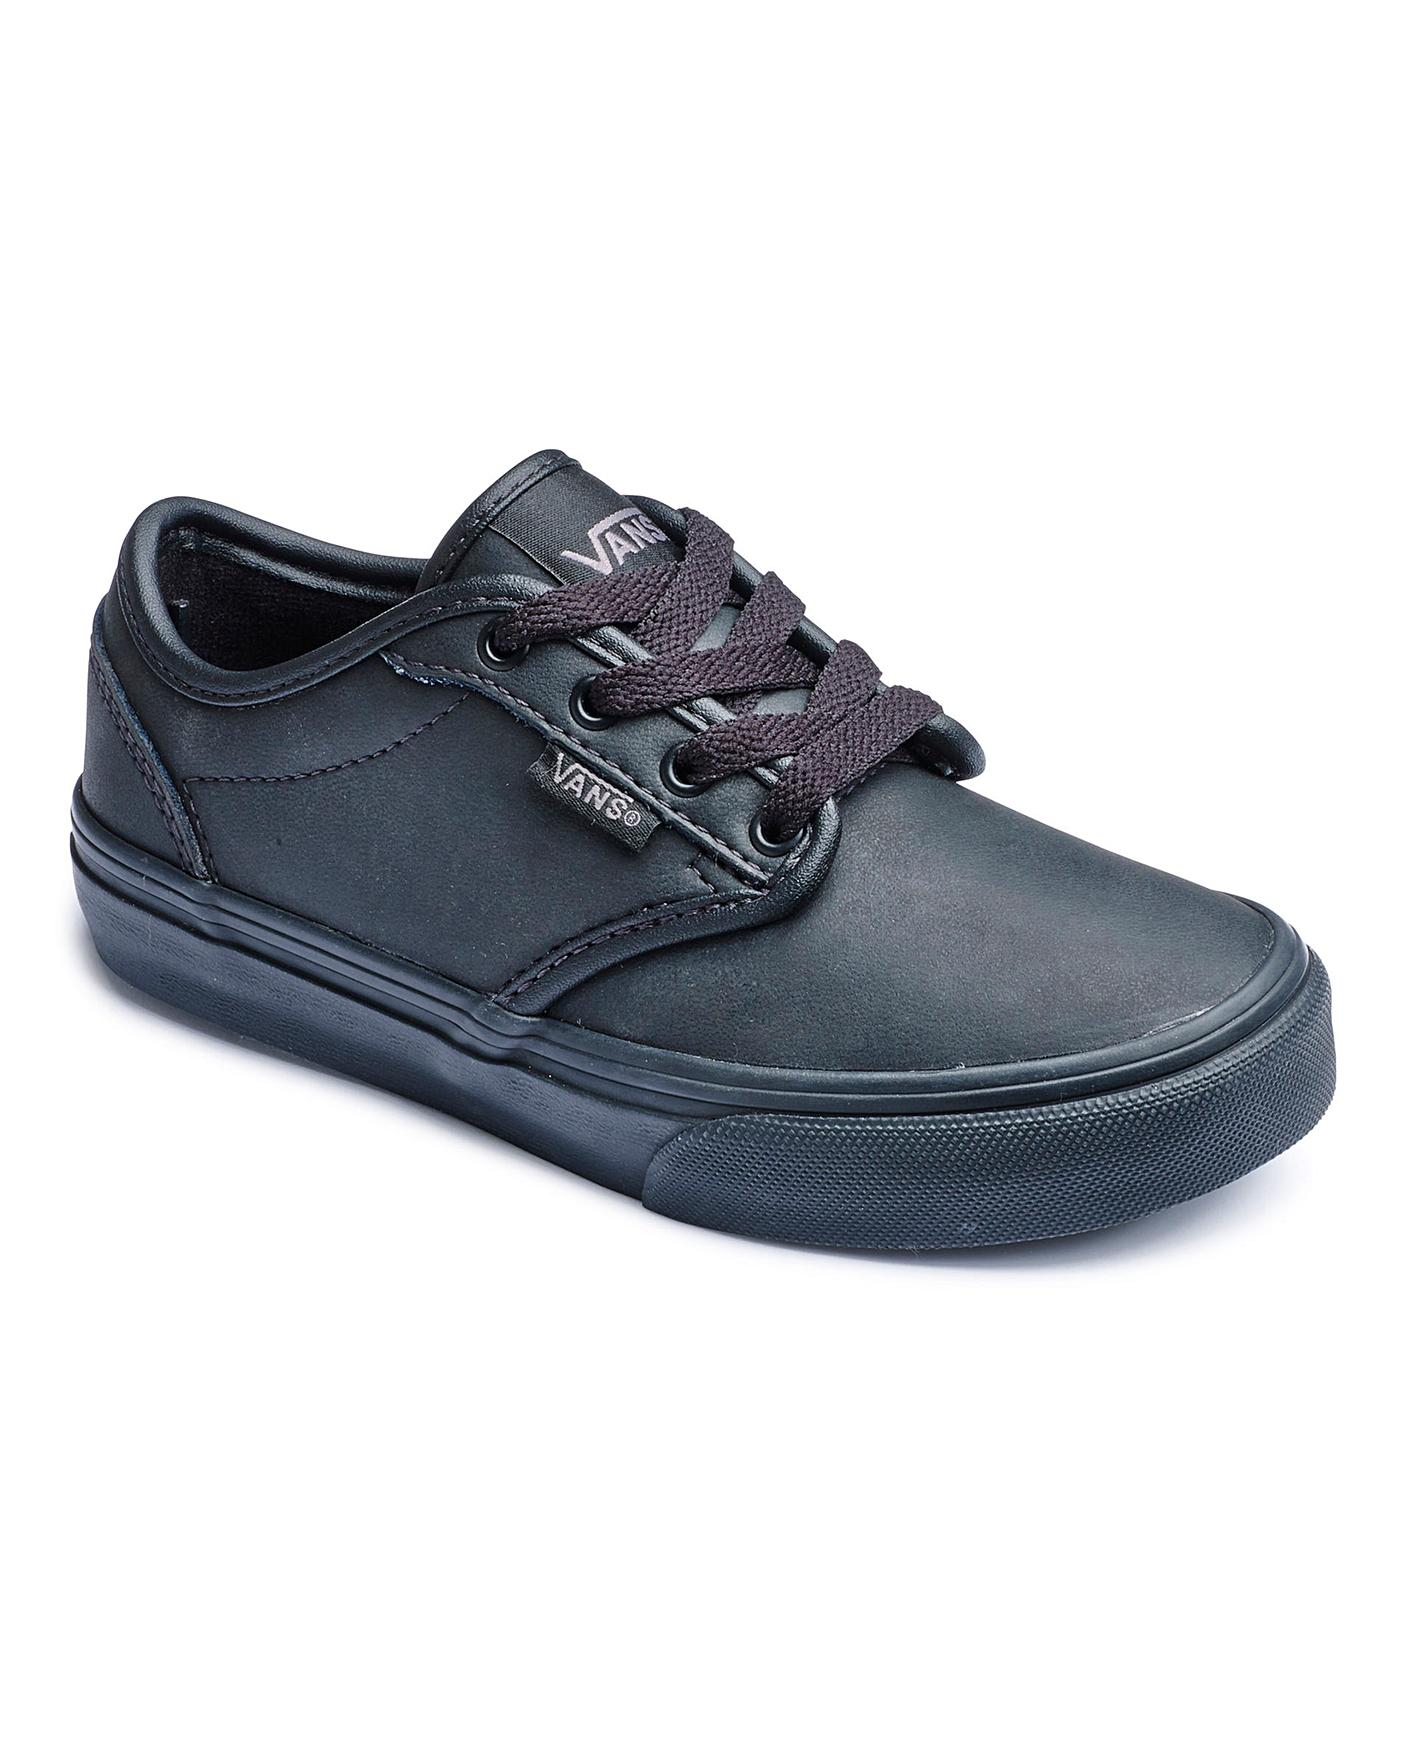 Vans Atwood Leather Shoes | Ambrose Wilson